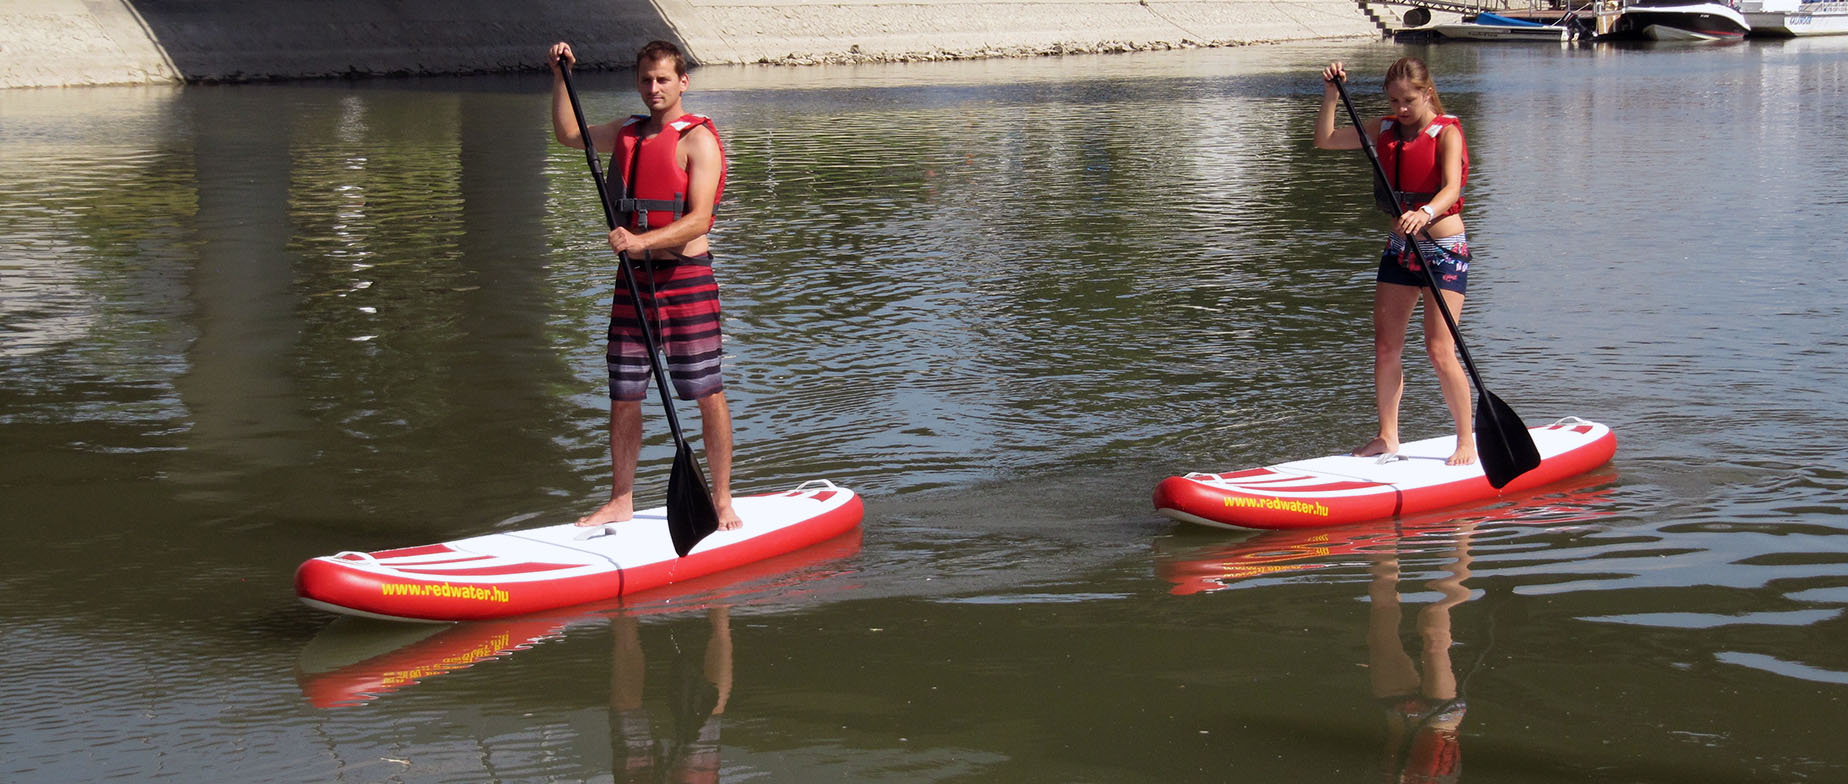 SUP (Stand Up Paddle) Győrben